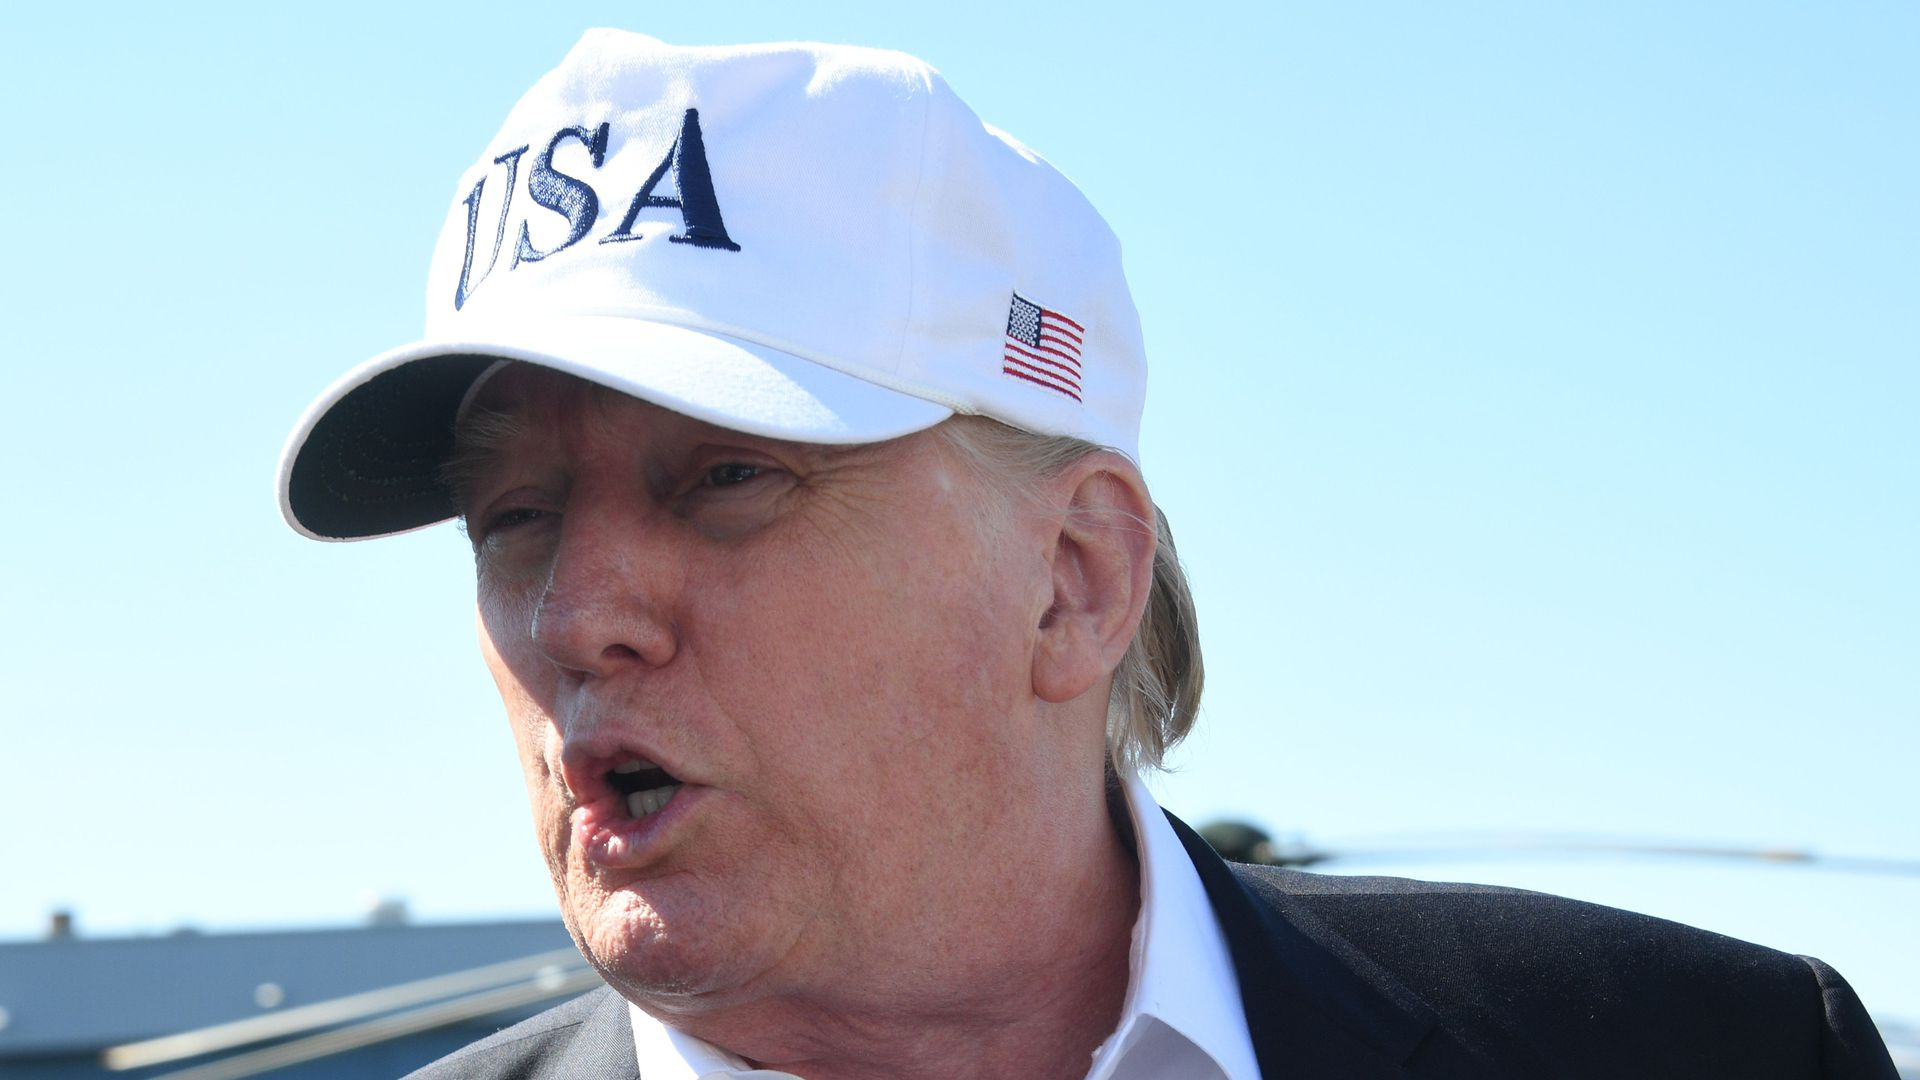 Donald Trump speaks with mouth open before a blue sky wearing a white USA hat.